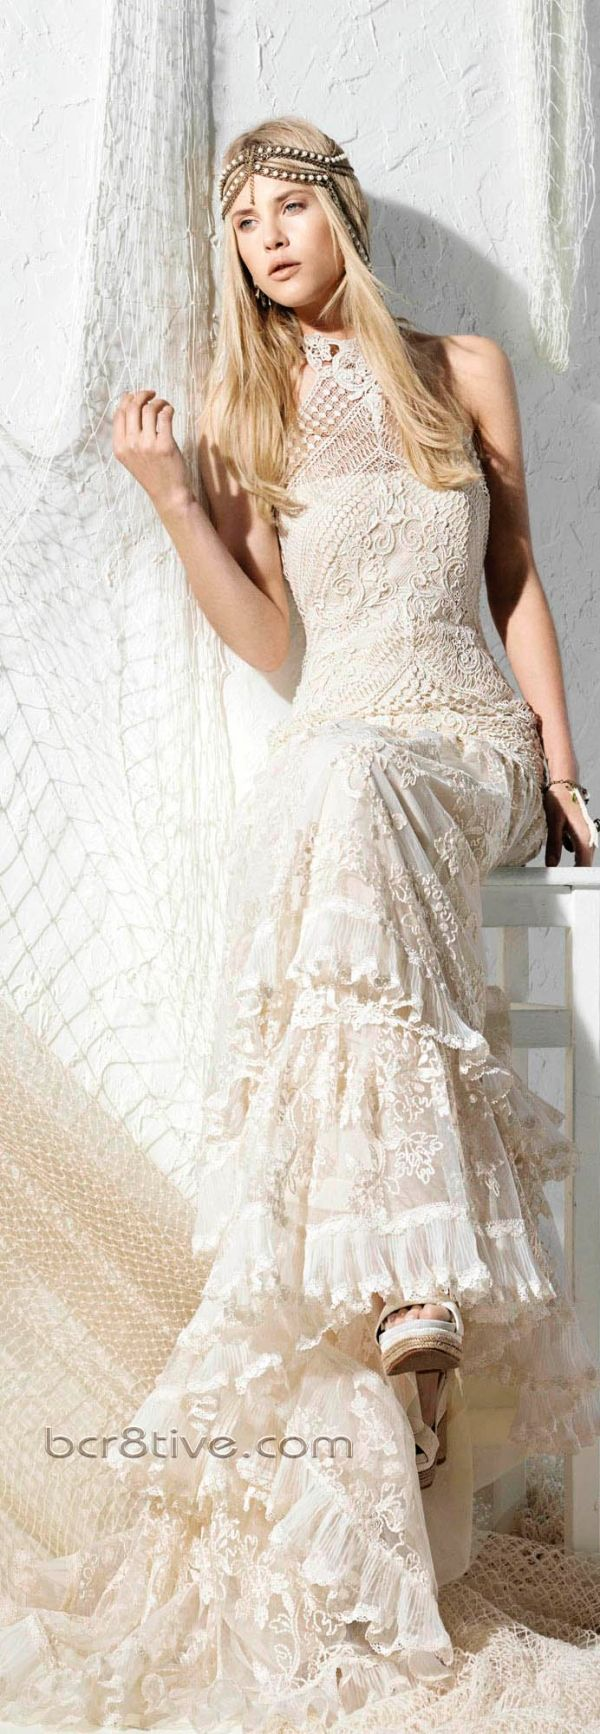 In love with lace two become one jan pinterest ibiza